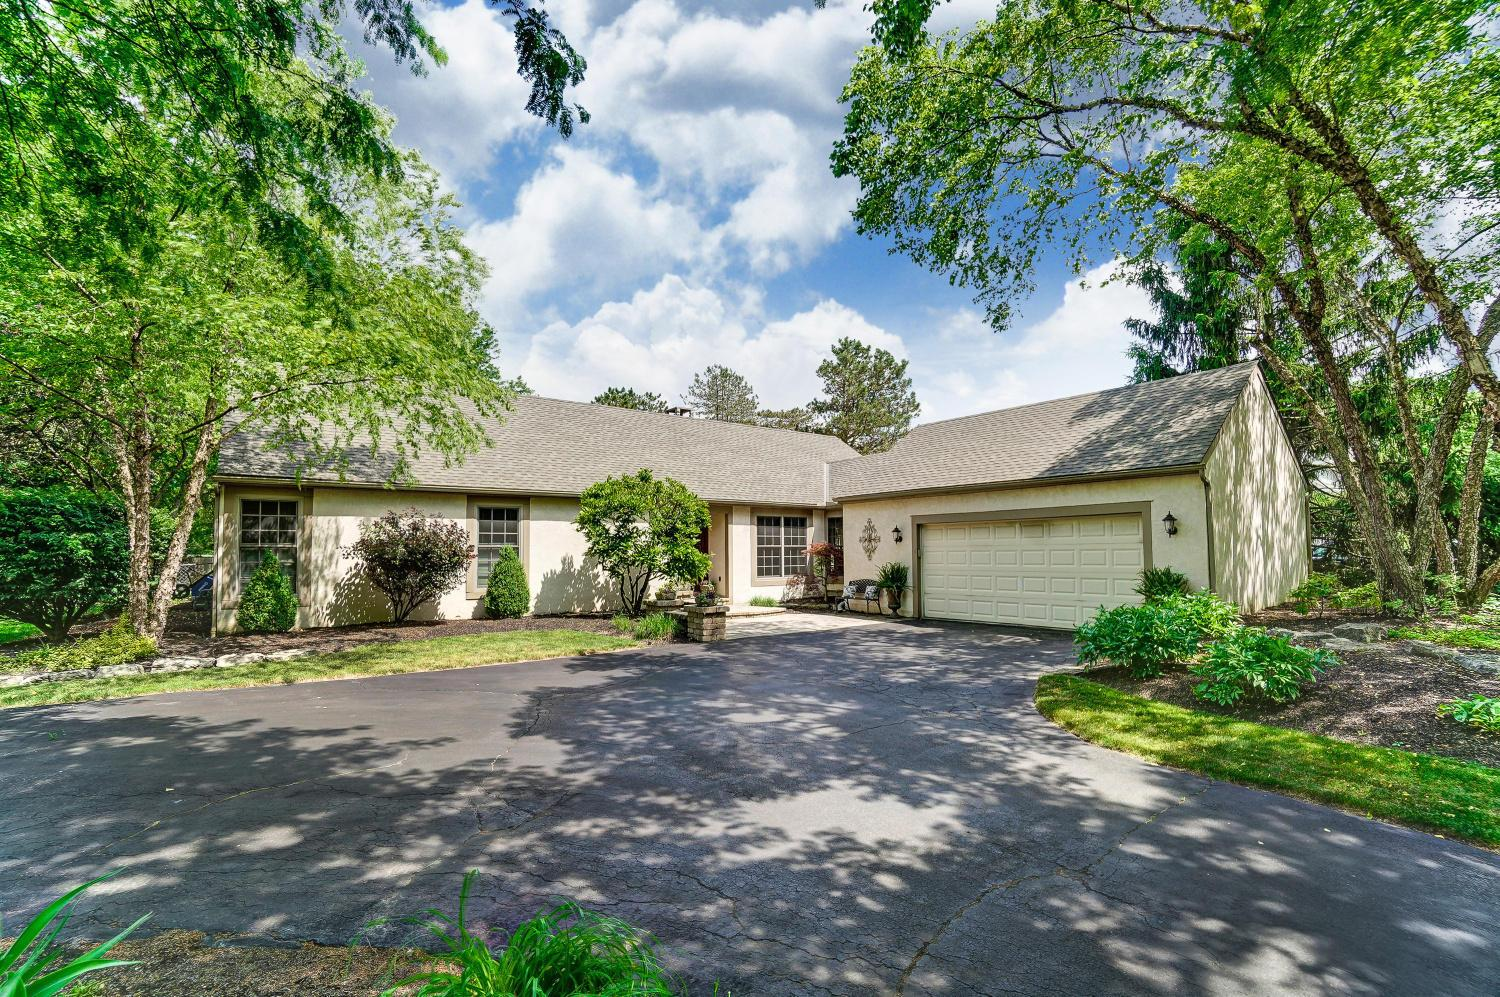 Property for sale at 2280 Picket Post Lane, Upper Arlington, Ohio 43220